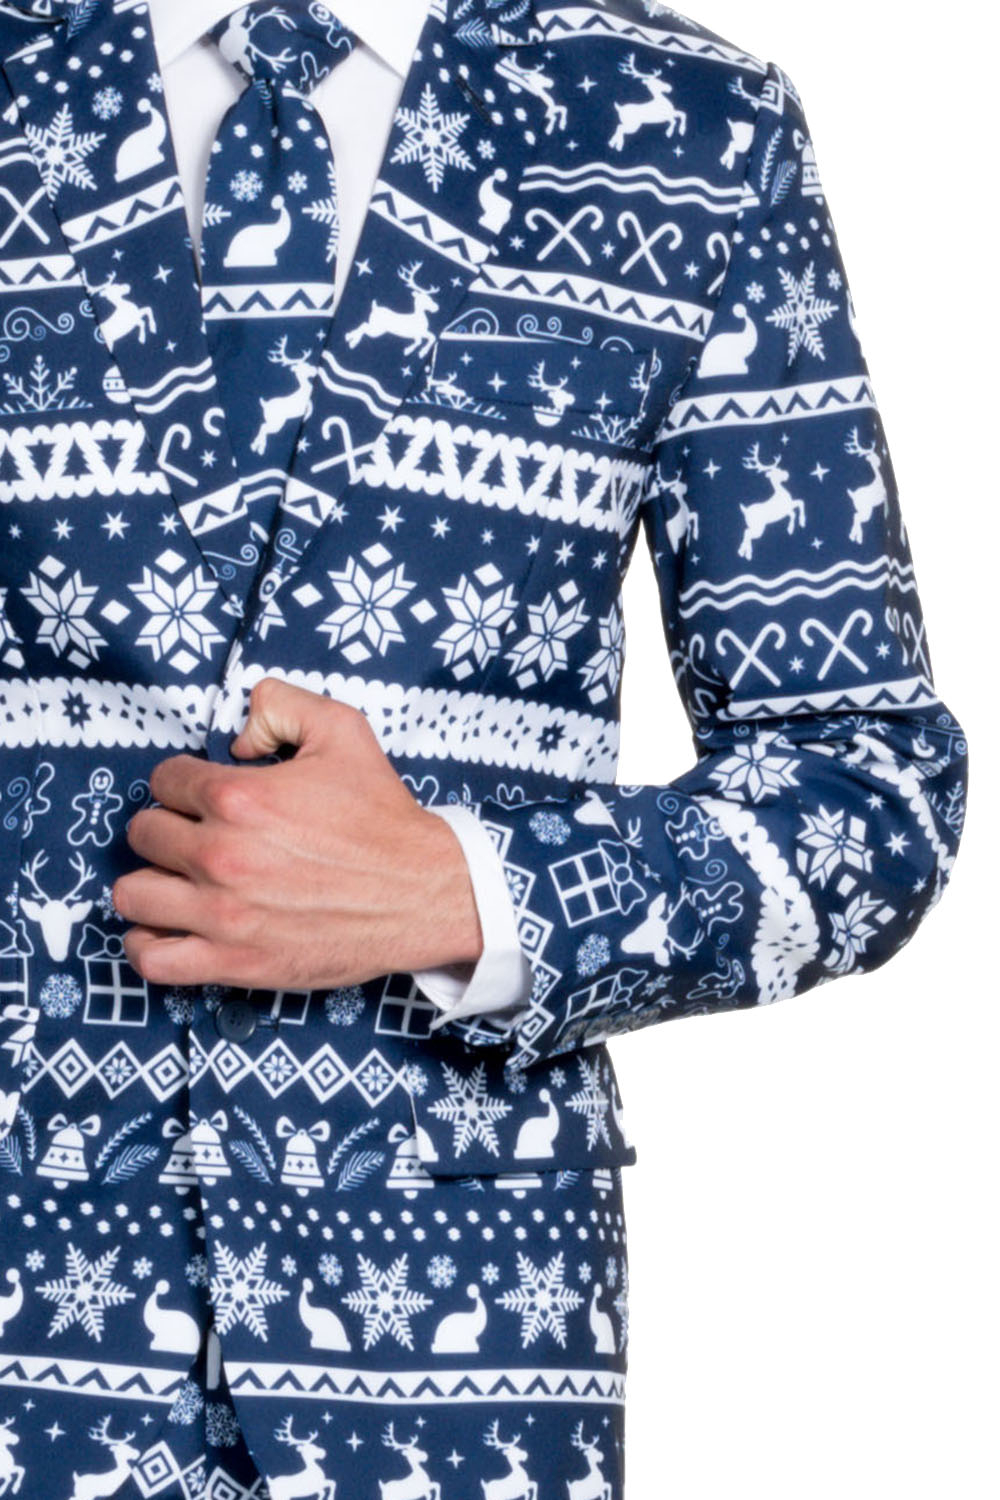 The Ugly Sweater Suit